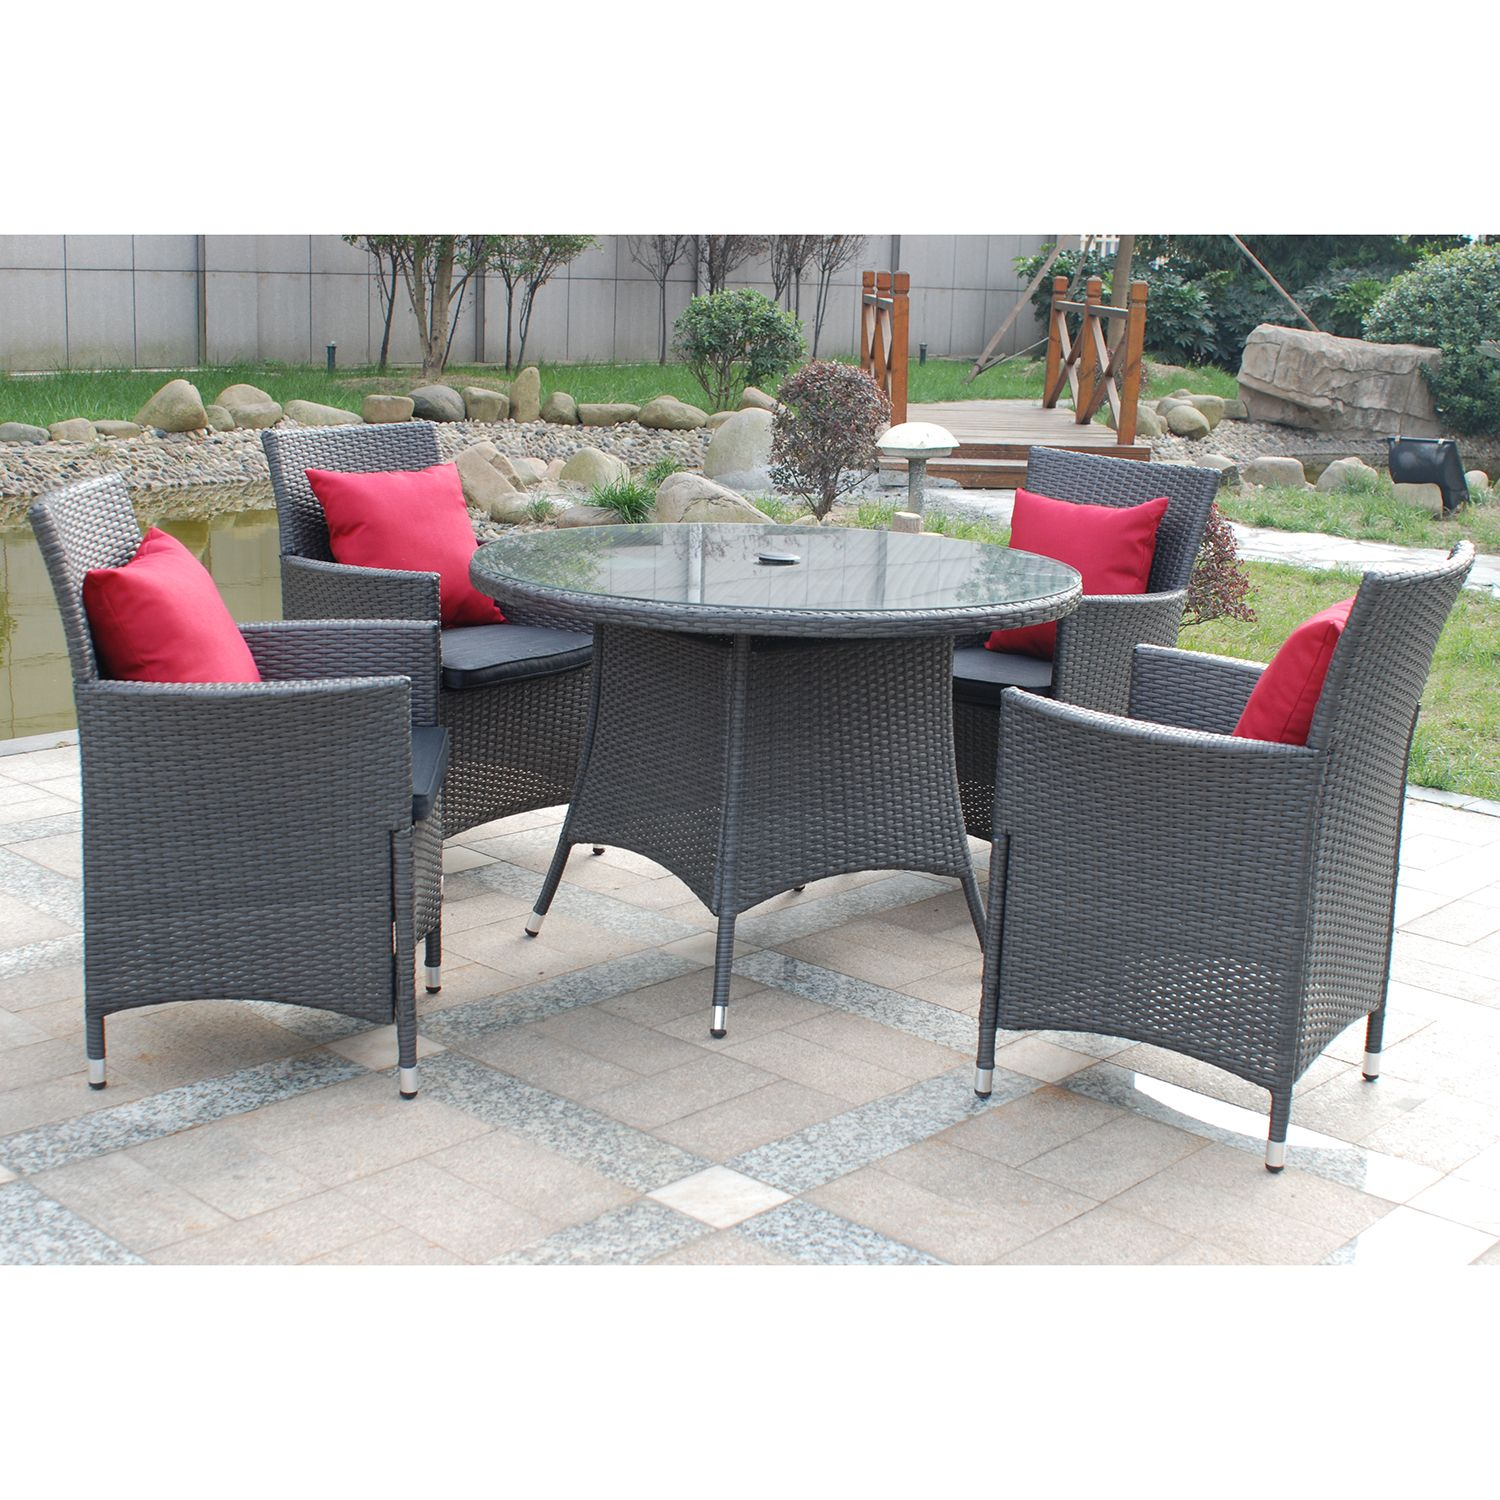 featuring a rattan weave design in graphite grey this patio dining set includes four basket weave carver arm chairs with grey seat pads to provide - Garden Furniture 4 Seater Sets